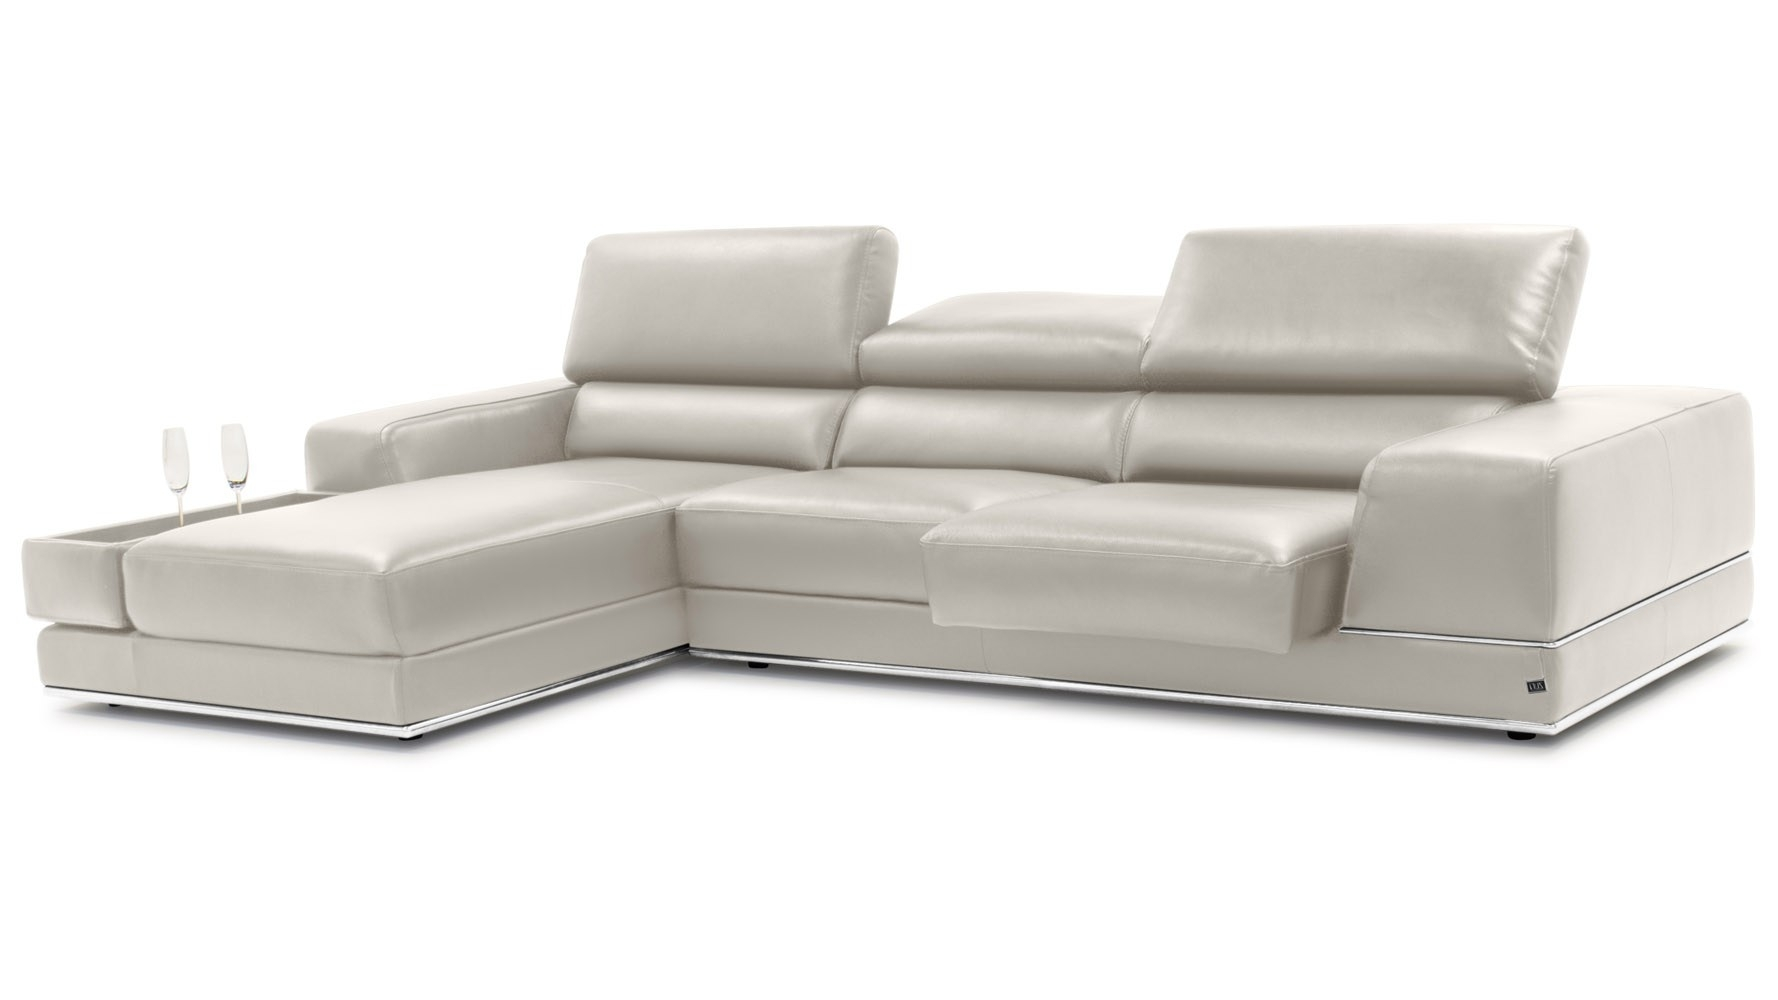 Dazzling Tenny Grey Piece Left Facing Chaise Sectional Headrest Been with regard to Tenny Dark Grey 2 Piece Left Facing Chaise Sectionals With 2 Headrest (Image 13 of 30)